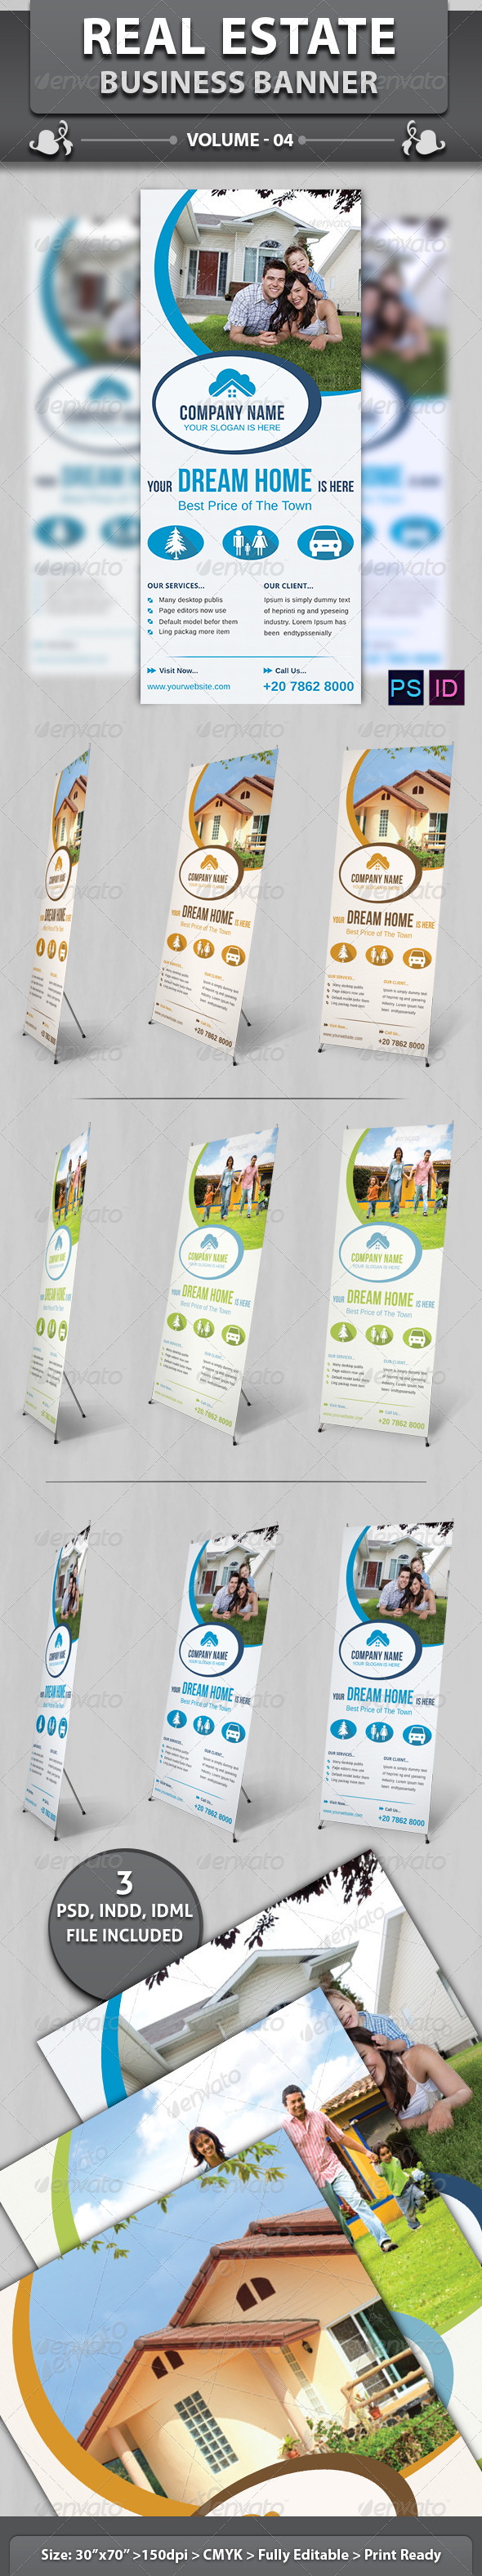 Real Estate Business Banner | Volume 4 - Signage Print Templates